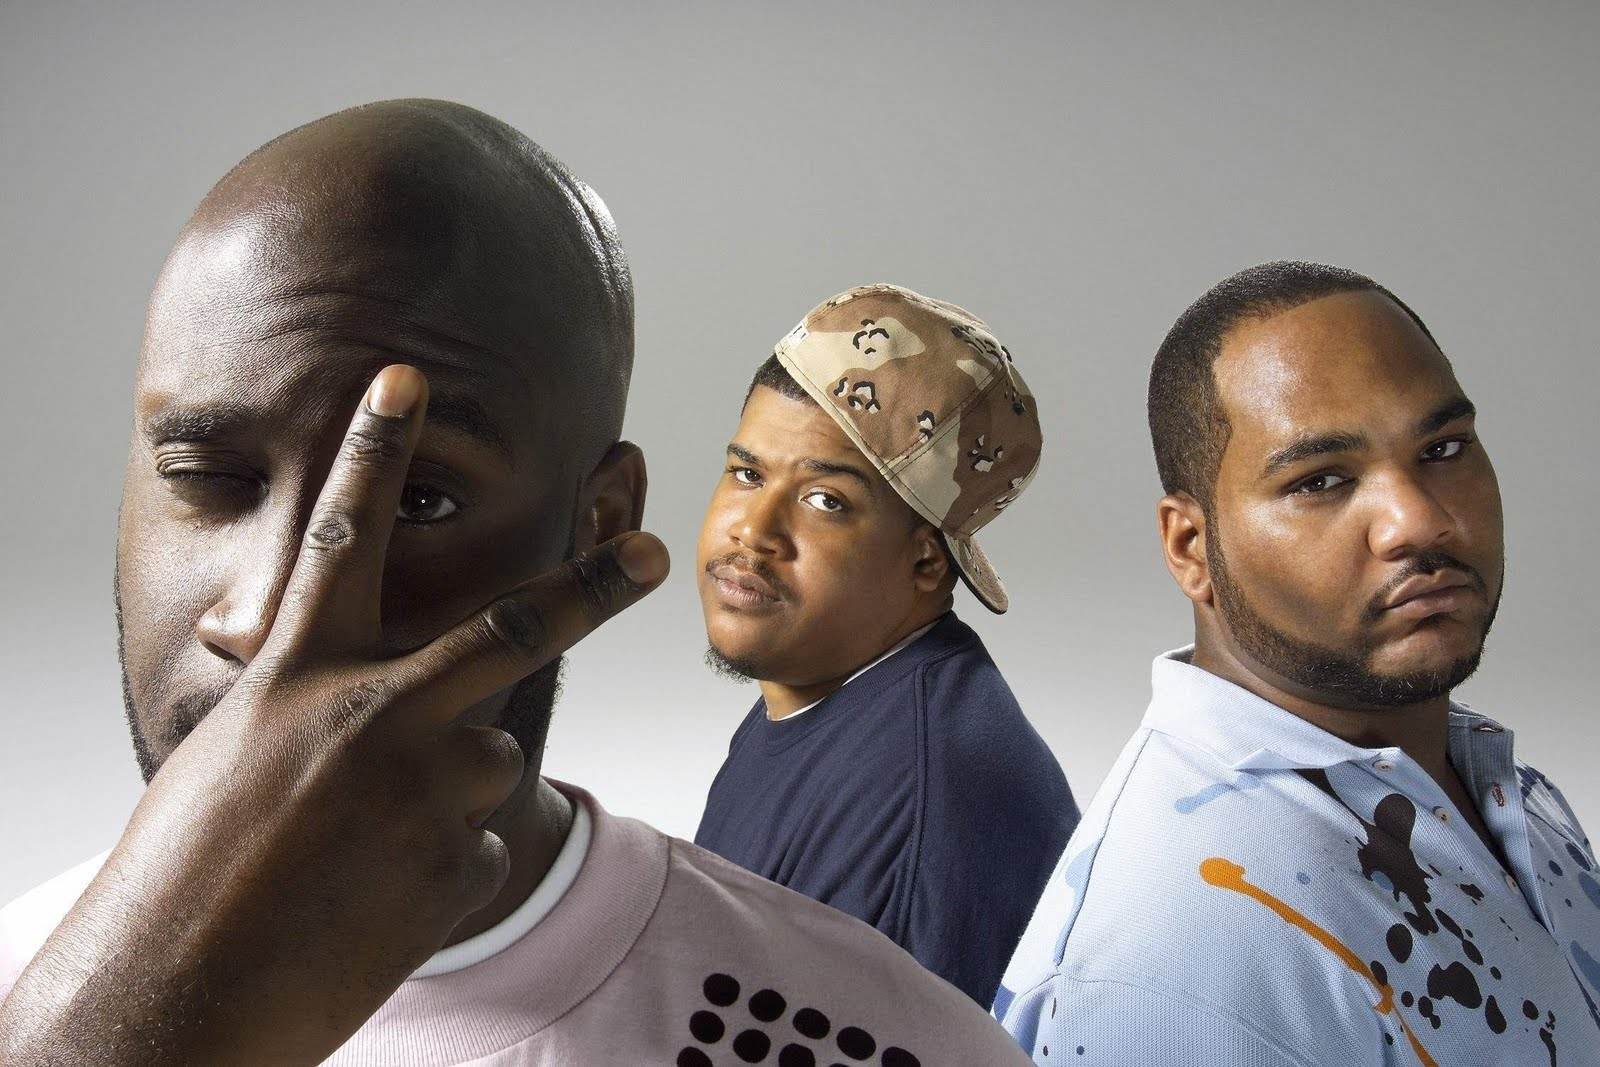 De La Soul Drops Their First Single Since 2004